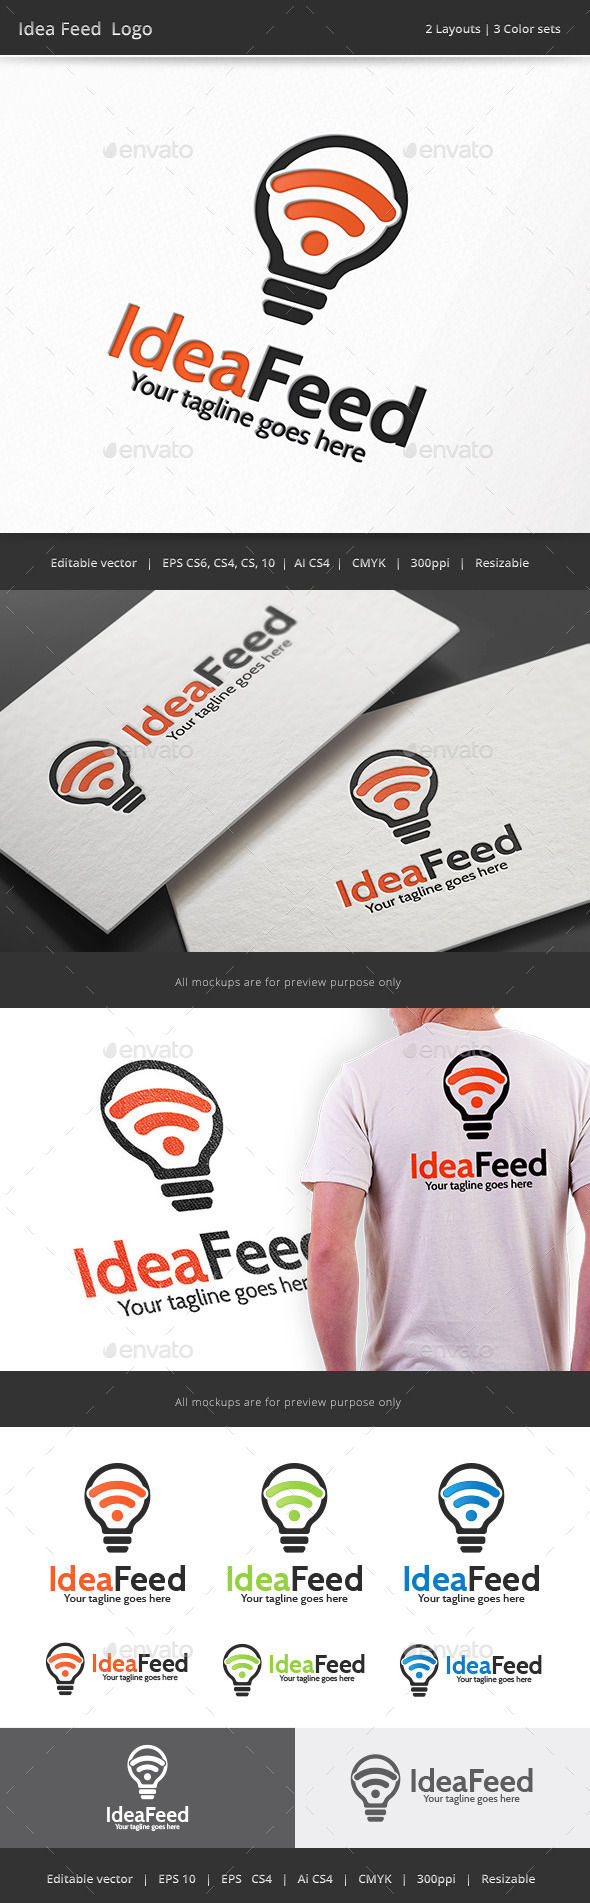 Idea Feed Logo - Vector Abstract